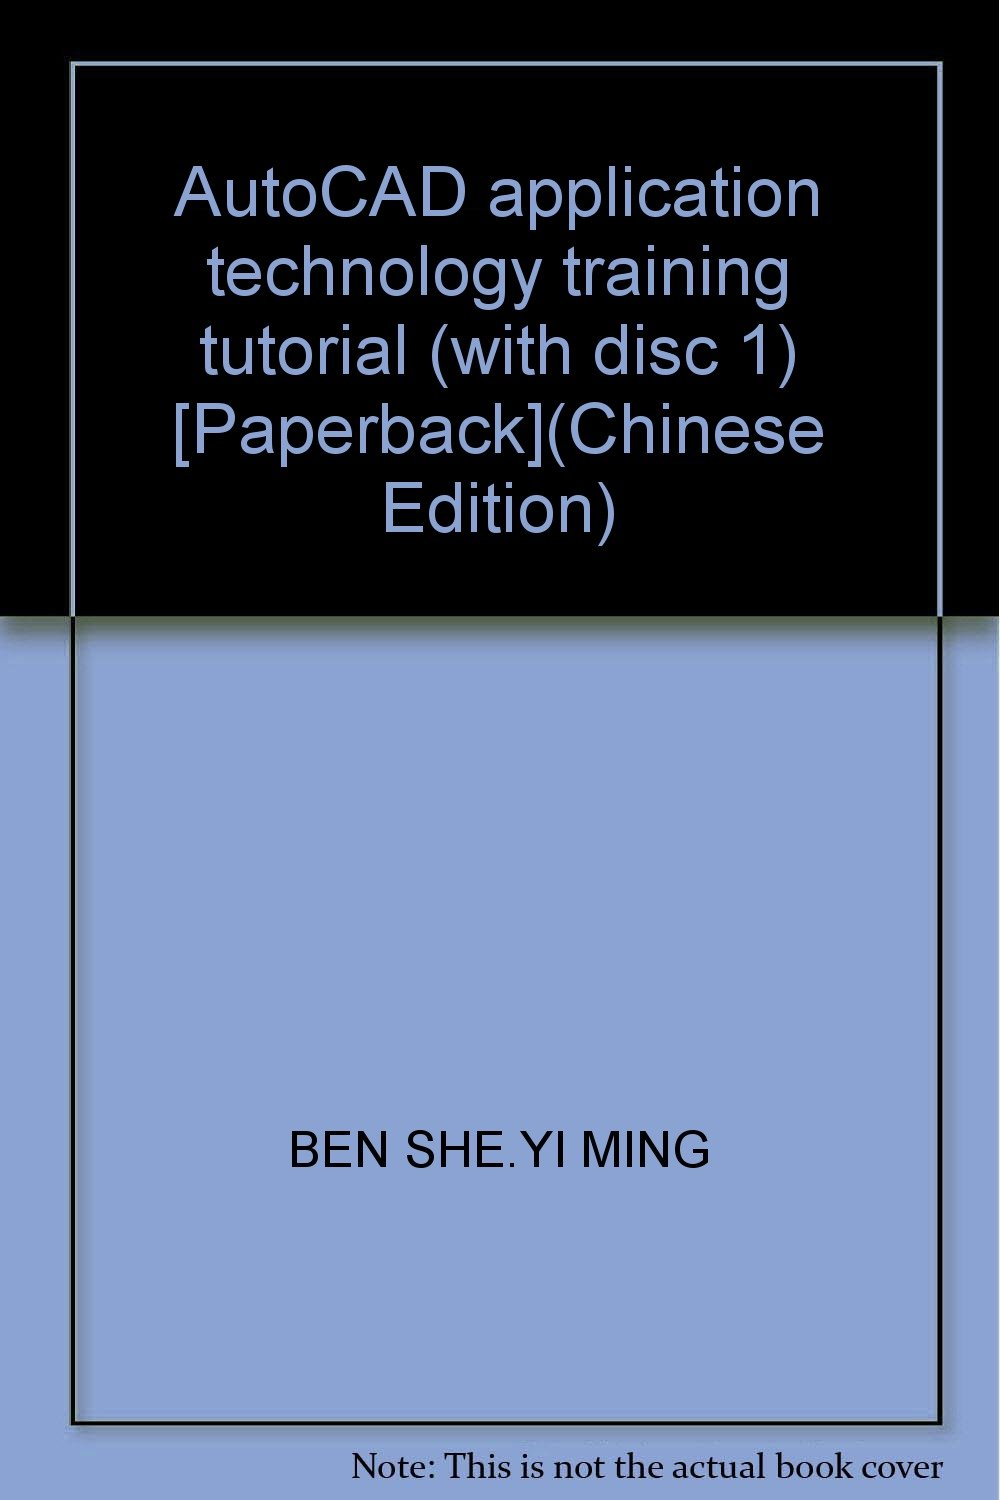 AutoCAD application technology training tutorial (with disc 1) [Paperback](Chinese Edition) pdf epub